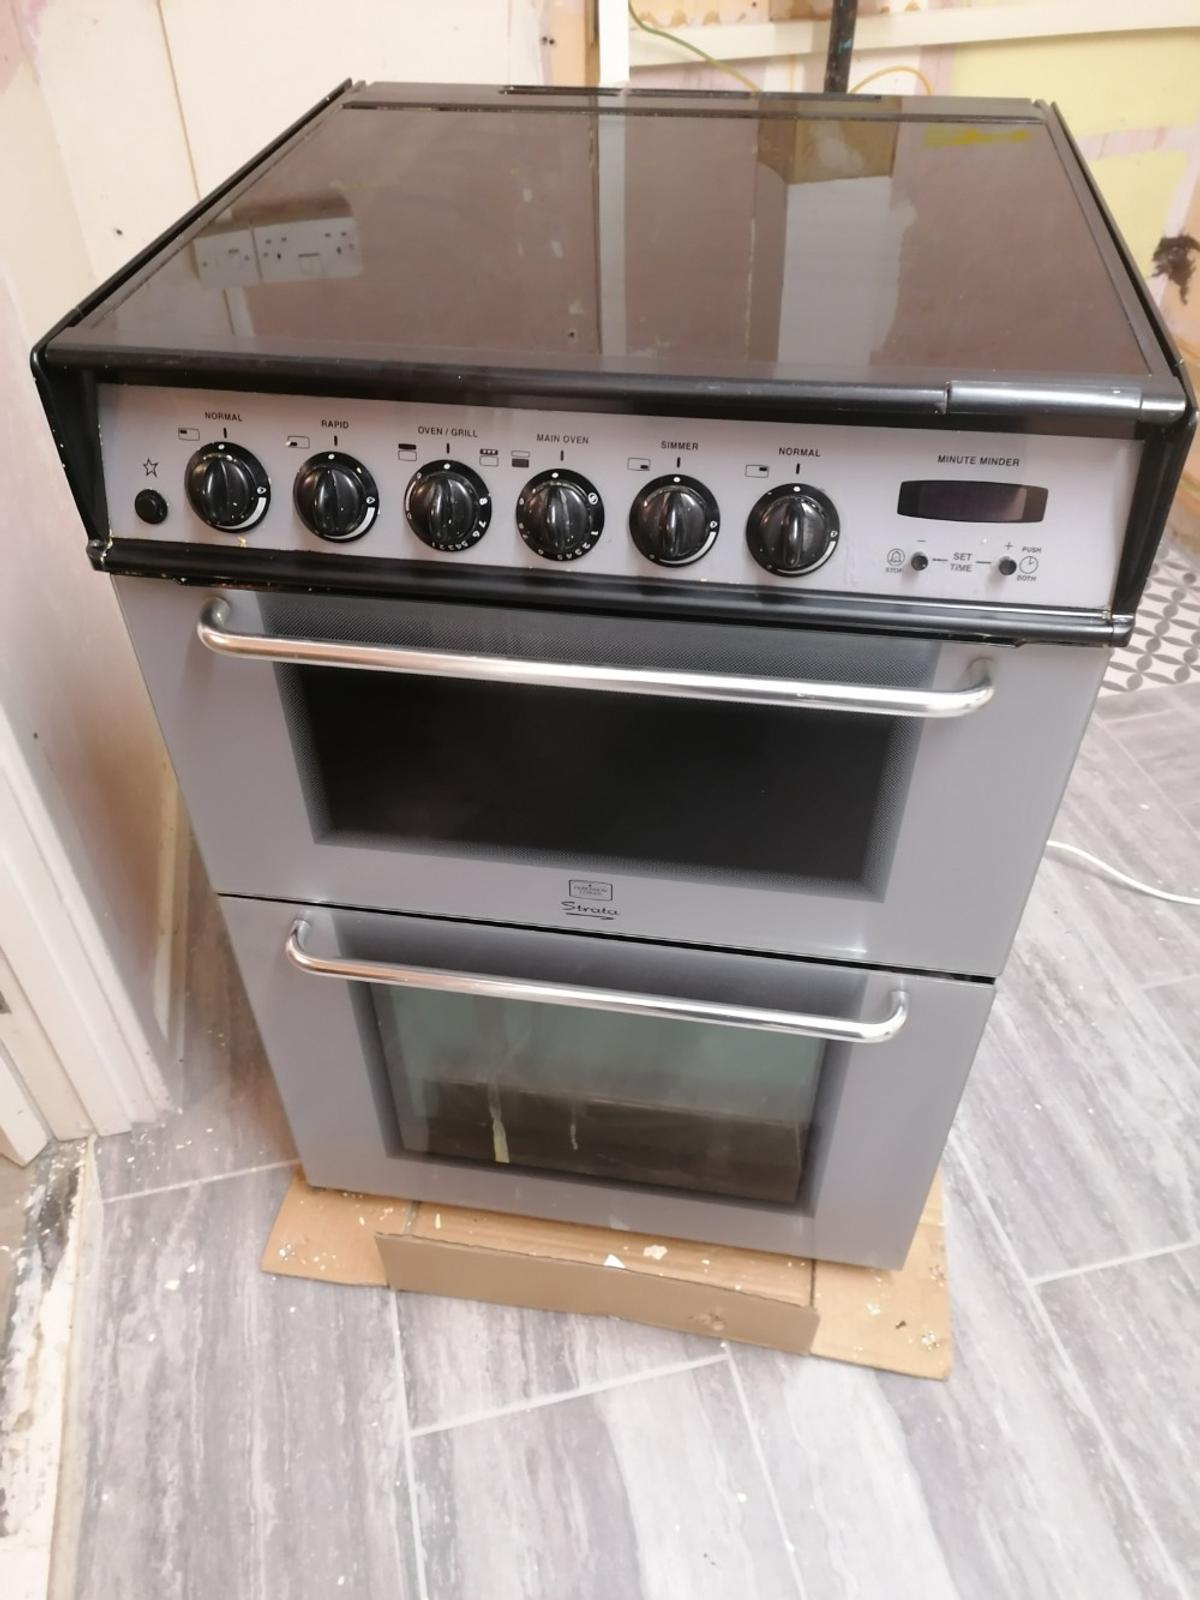 Freestanding Strata double gas oven, grill and hob made by Parkinson Cowan. 600mm wide and 650mm deep. Comes with gas hose attached. Integrated, hinged top. Has two shelves. Electric clock display and timer. Comes from a smoke free and pet free home.